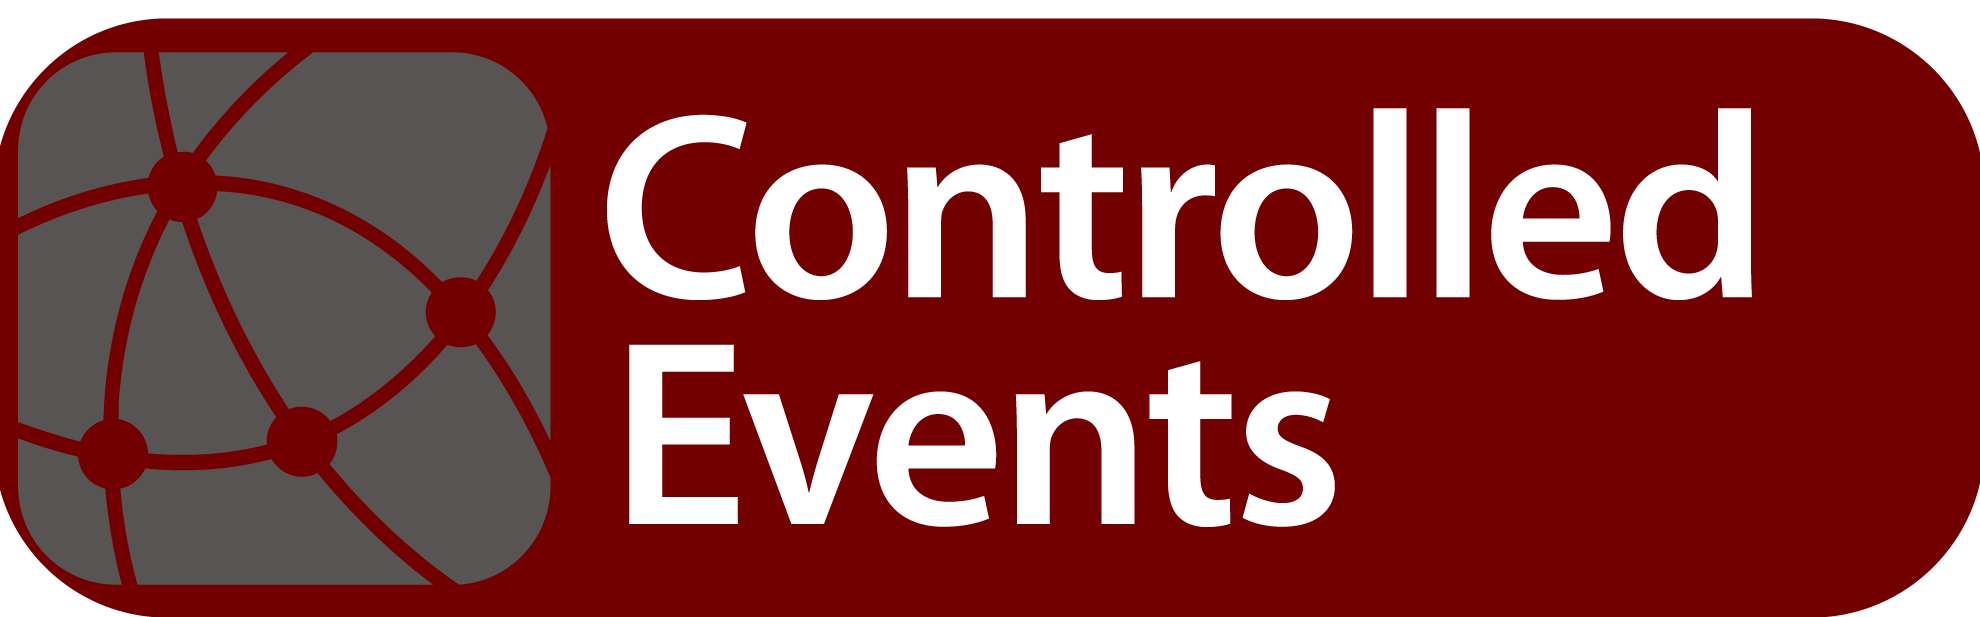 Controlled Events